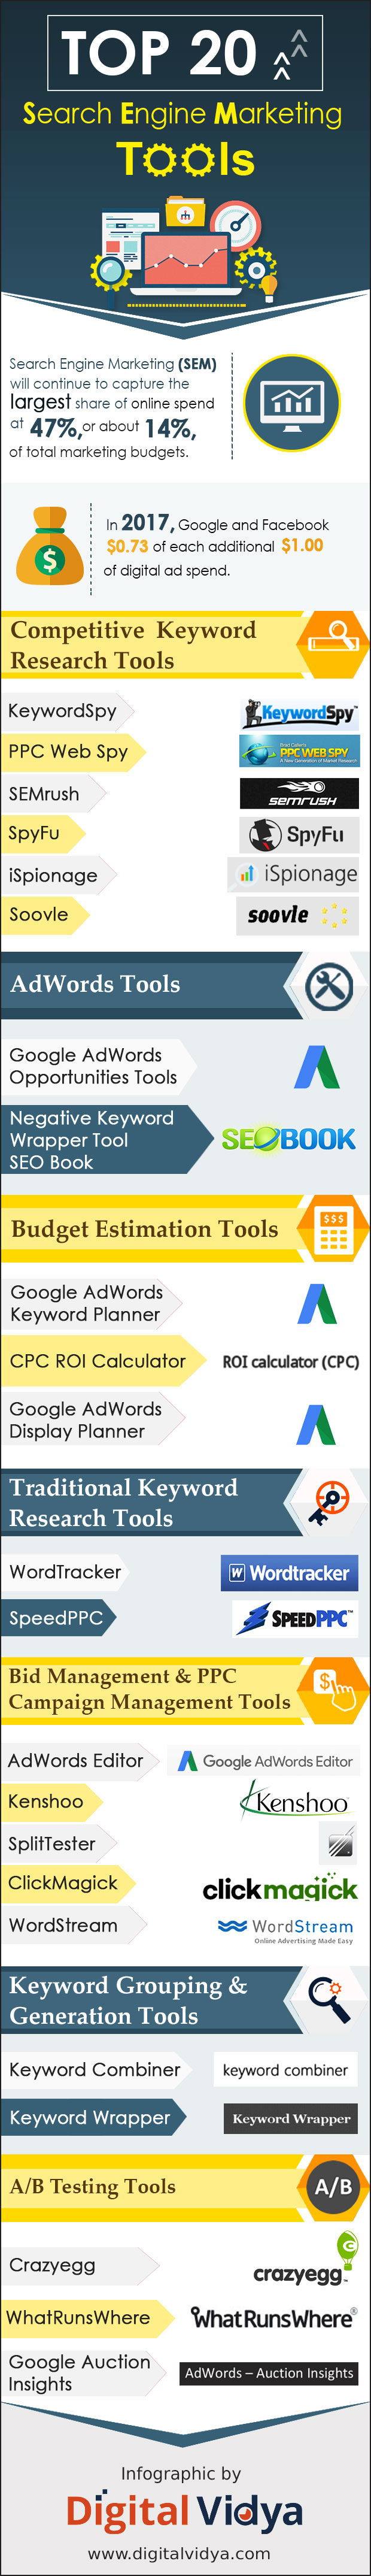 Top 20 Search Engine Marketing (SEM) Tools_infographic